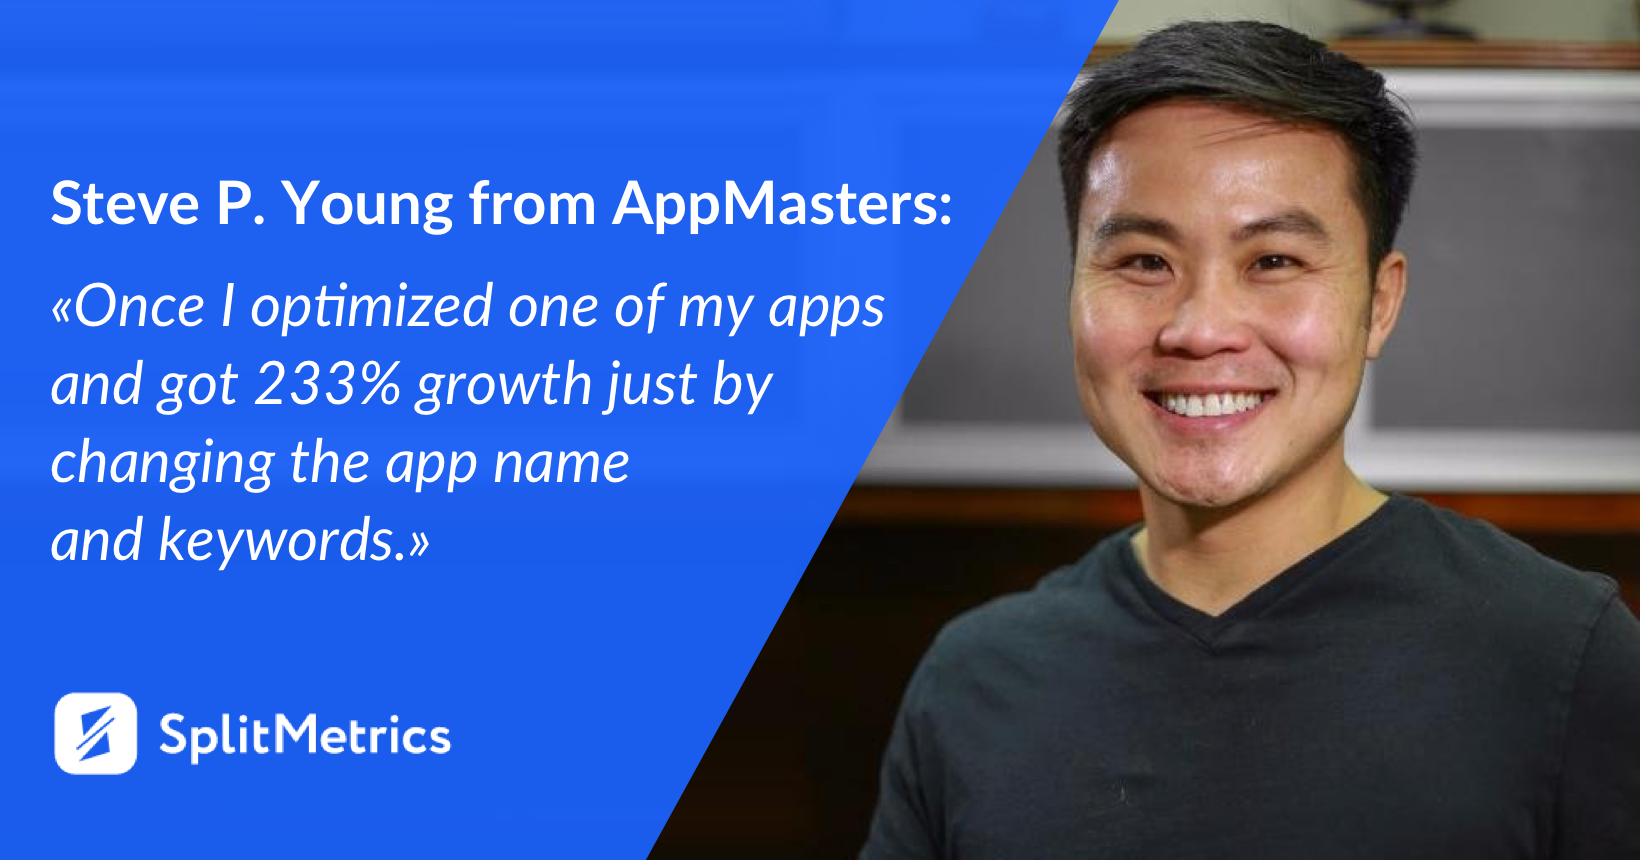 mobile app growth app store appmasters splitmetrics